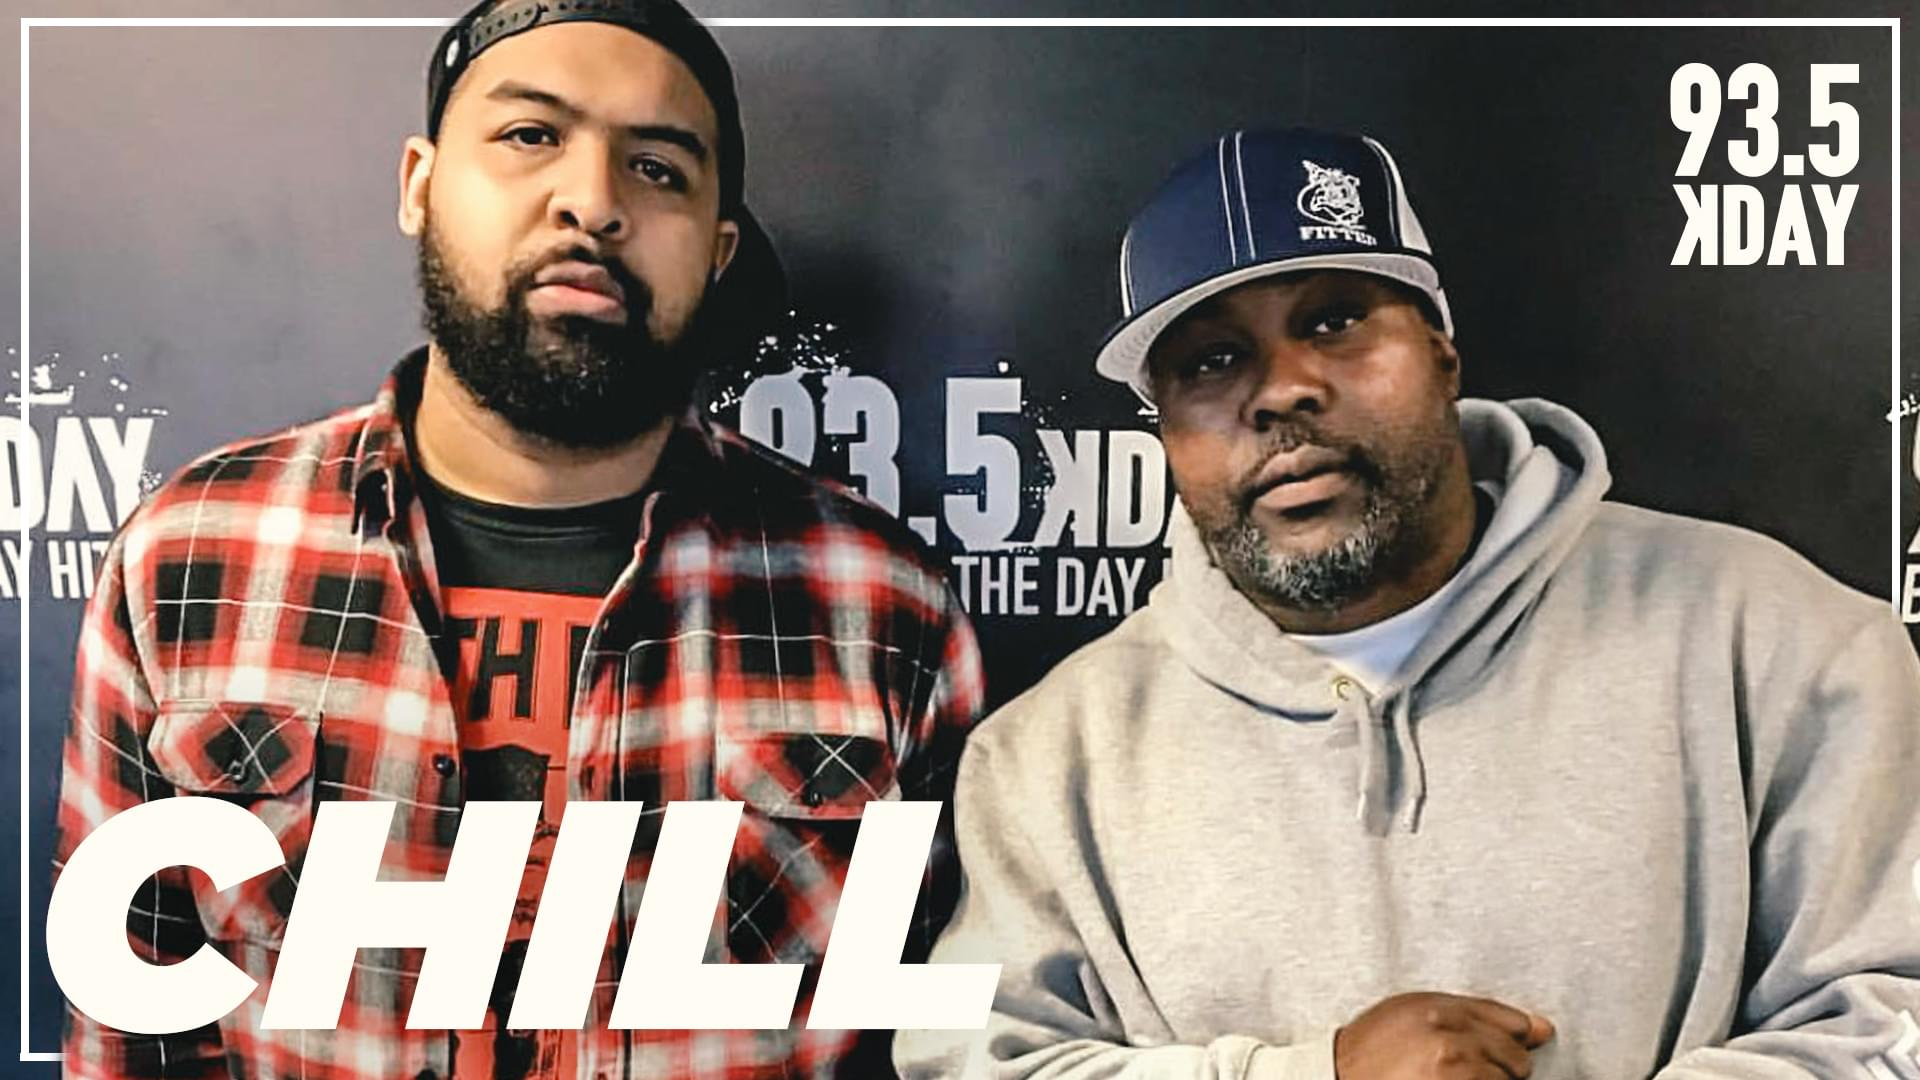 Tha Chill On New Album '4wit80', Compton's Most Wanted, & His Thoughts On 6ix9ine